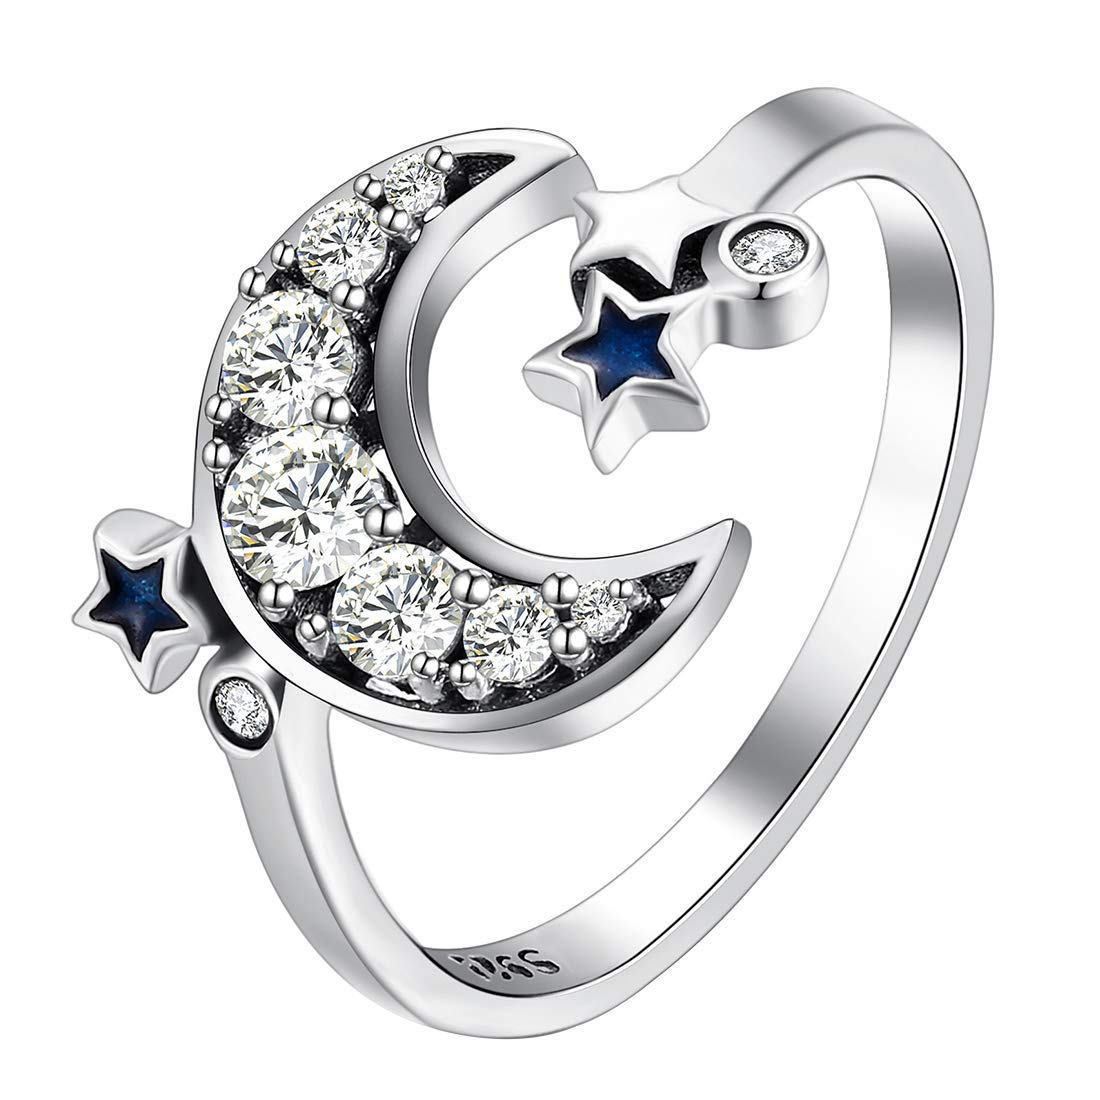 joyliveCY Fashion 925 Sterling Silver Jewelry Imperial Crown Luxury Elegant Party Ring Size 7 ChenYao-Swansea YHA2236